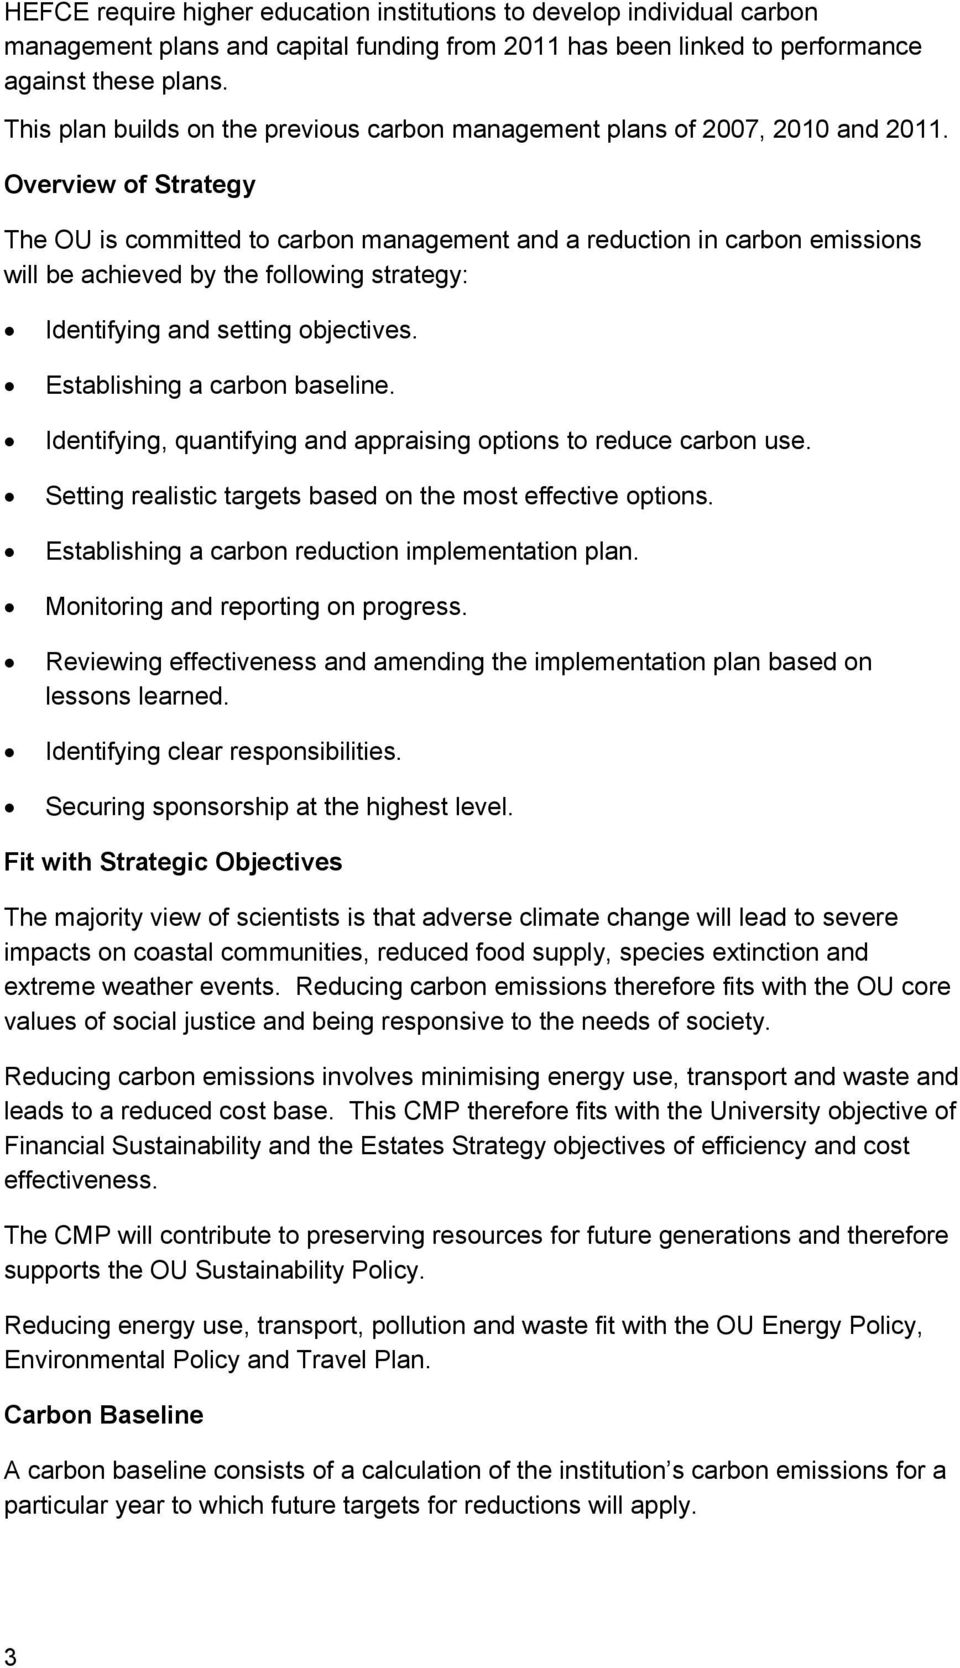 Overview of Strategy The OU is committed to carbon management and a reduction in carbon emissions will be achieved by the following strategy: Identifying and setting objectives.